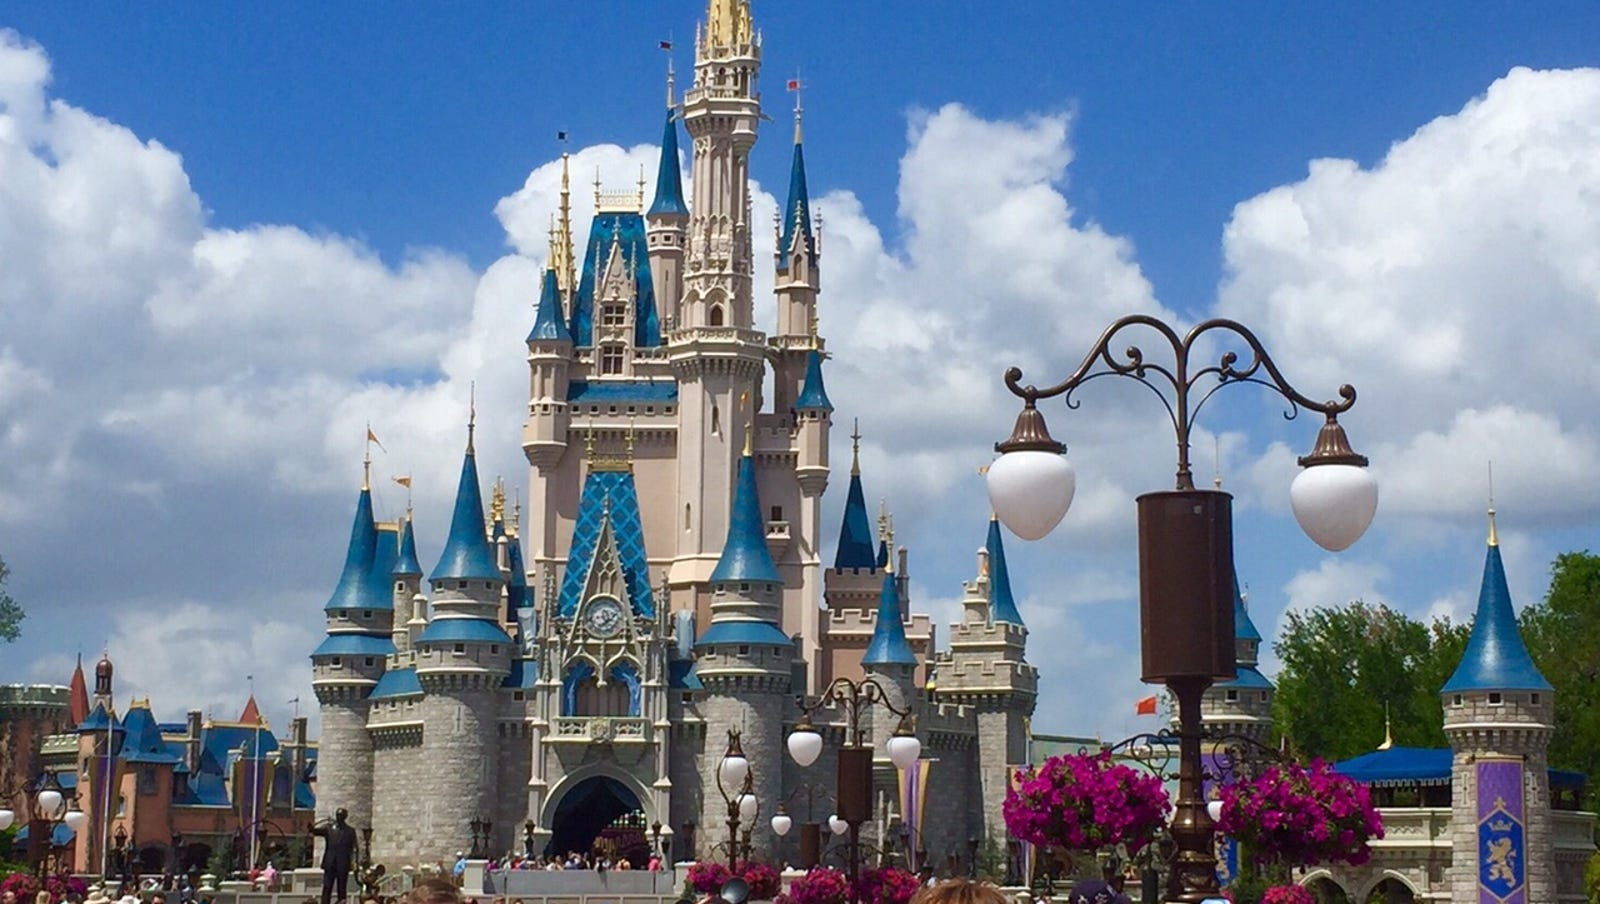 Disney World In Orlando Has New Ticket Pricing System Flexible Dates